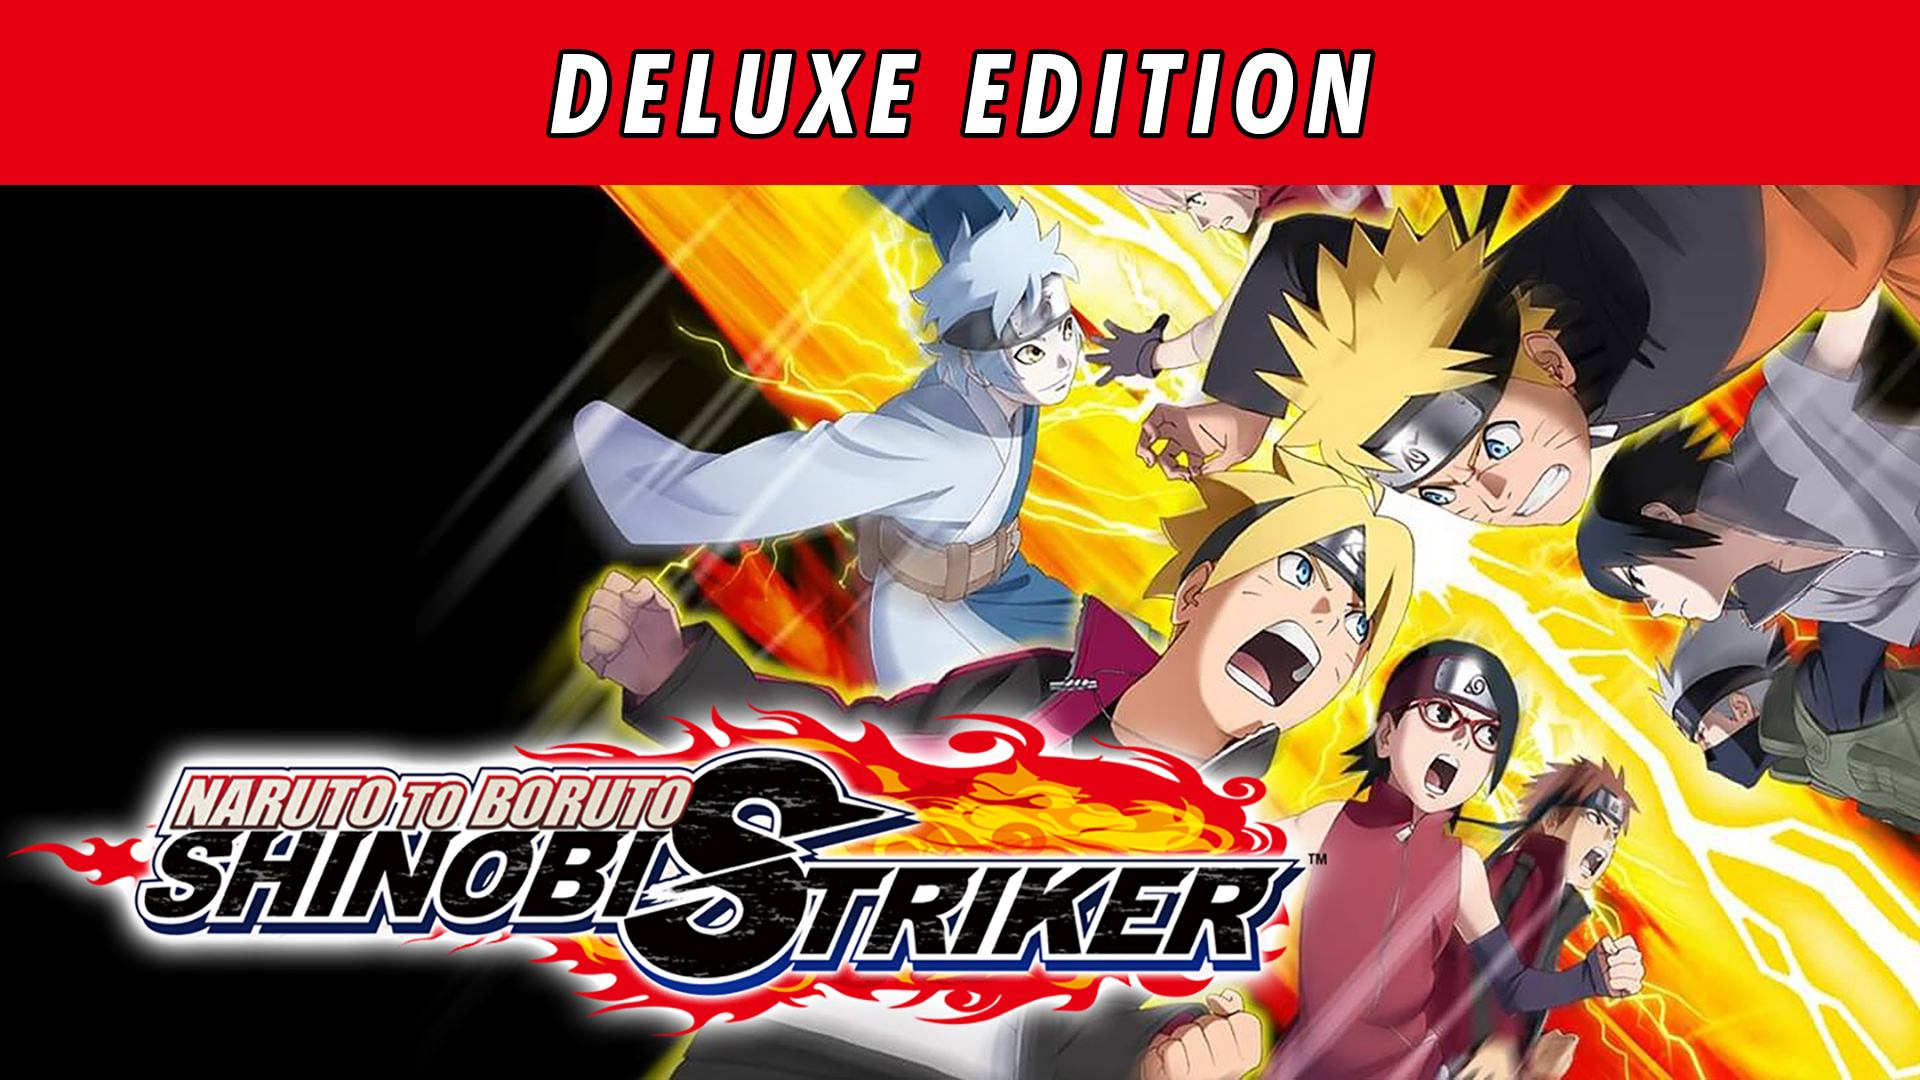 NARUTO TO BORUTO: SHINOBI STRIKER DELUXE EDITION | PC Steam Game